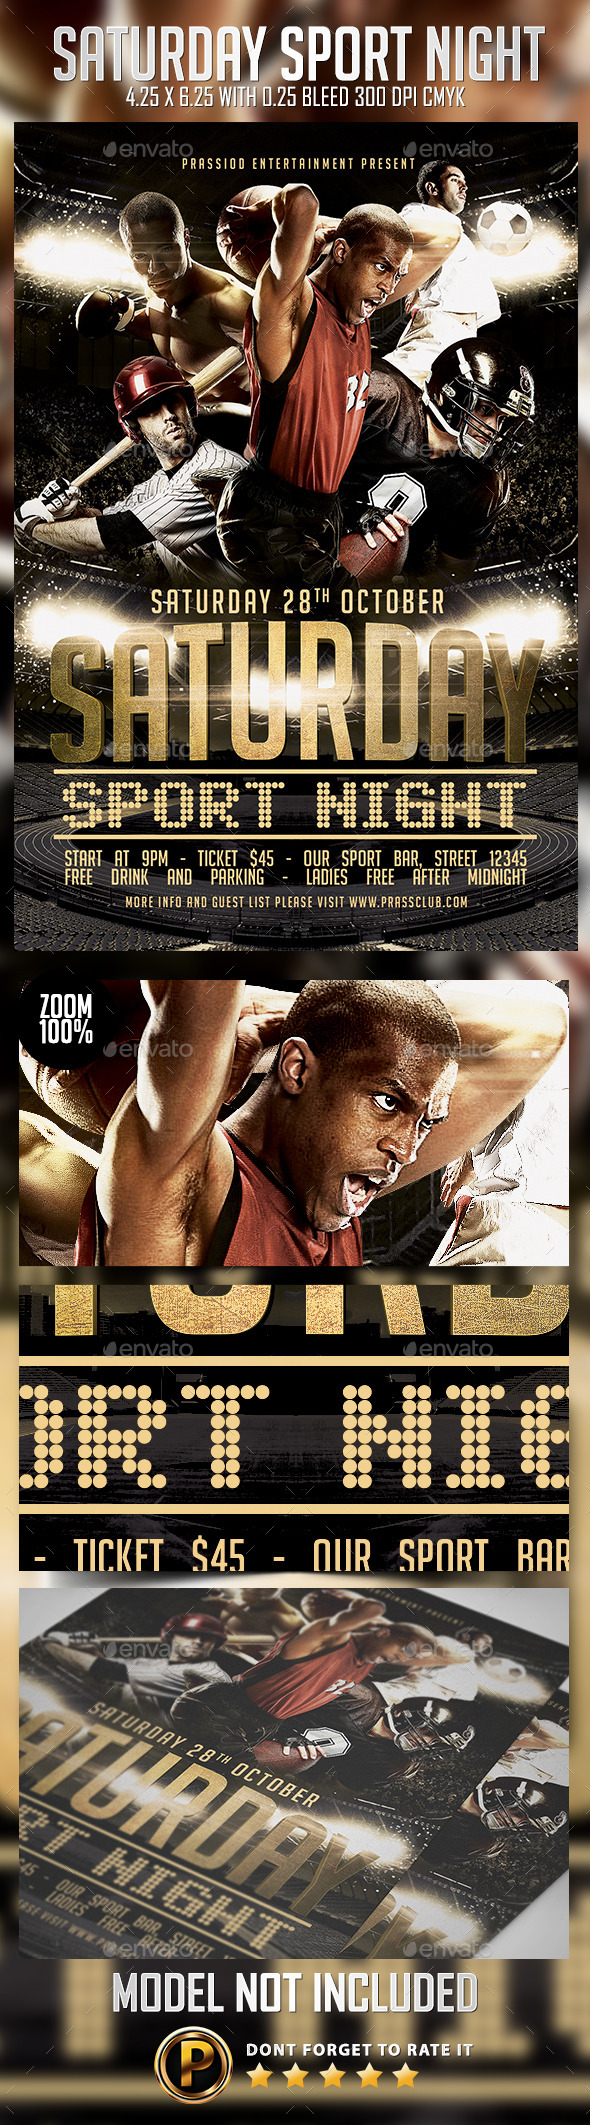 Saturday Sport Night Flyer Template - Sports Events